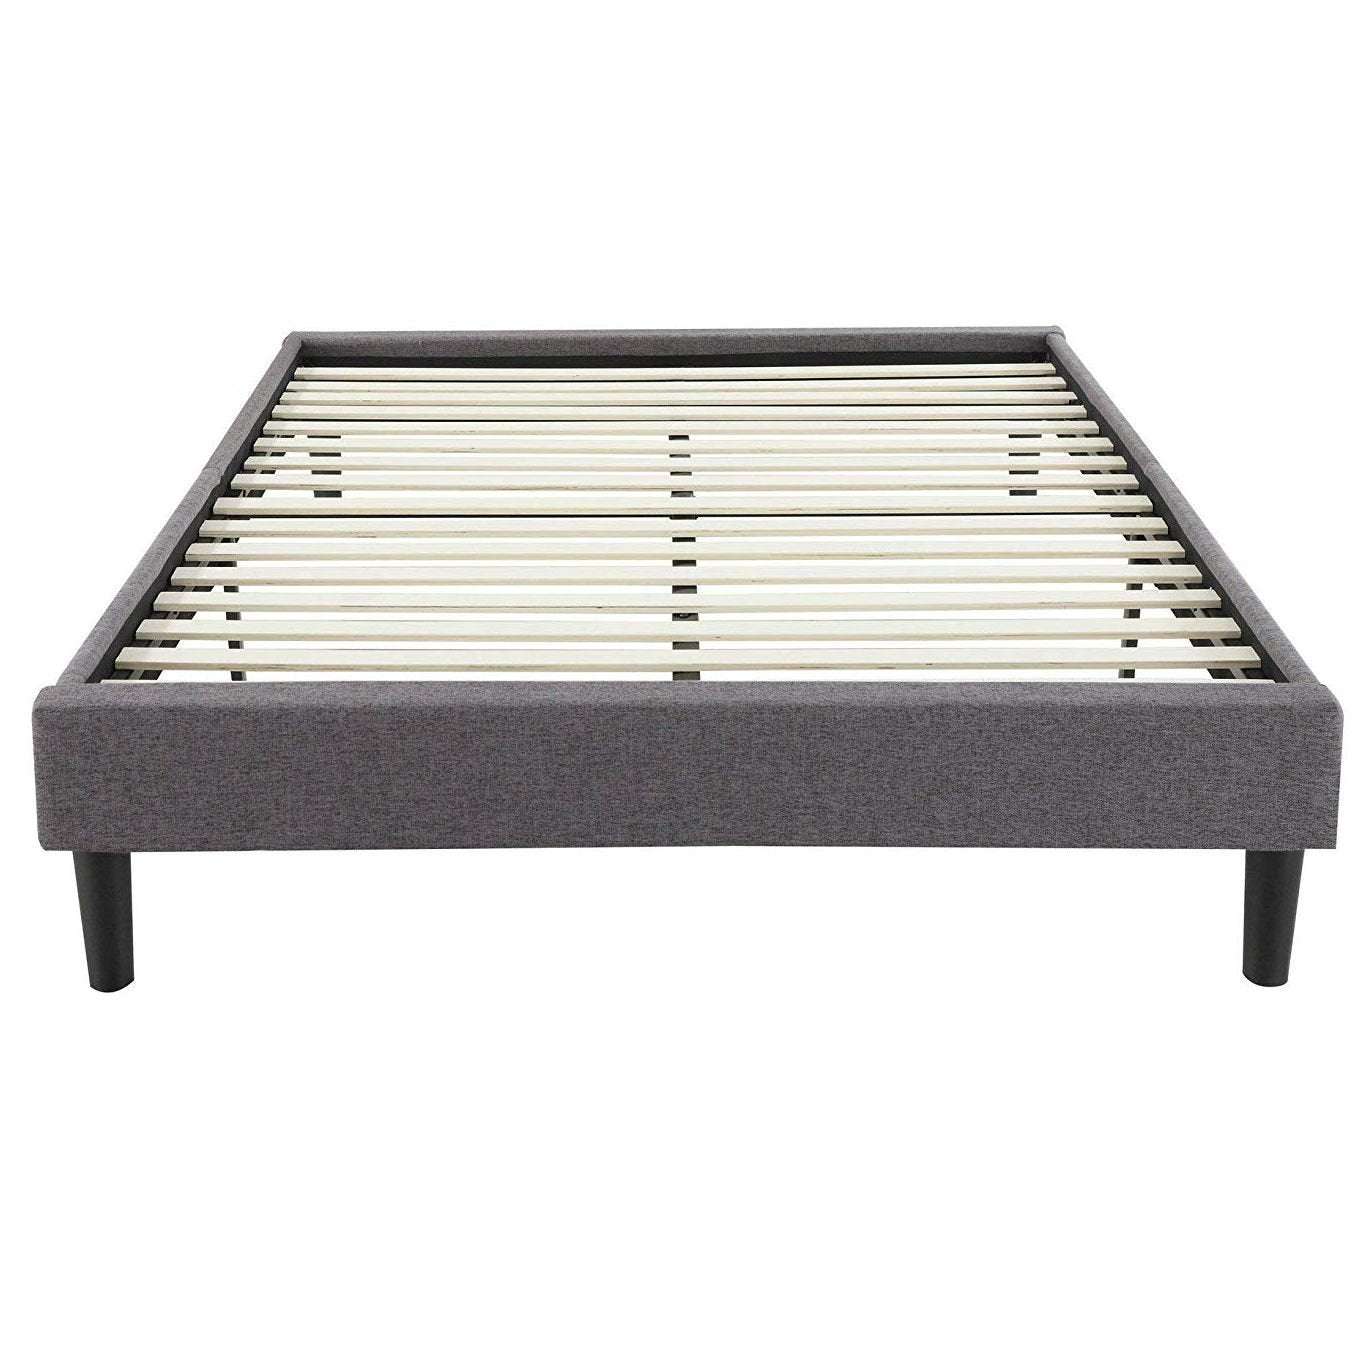 Preston Platform Bed Frame.